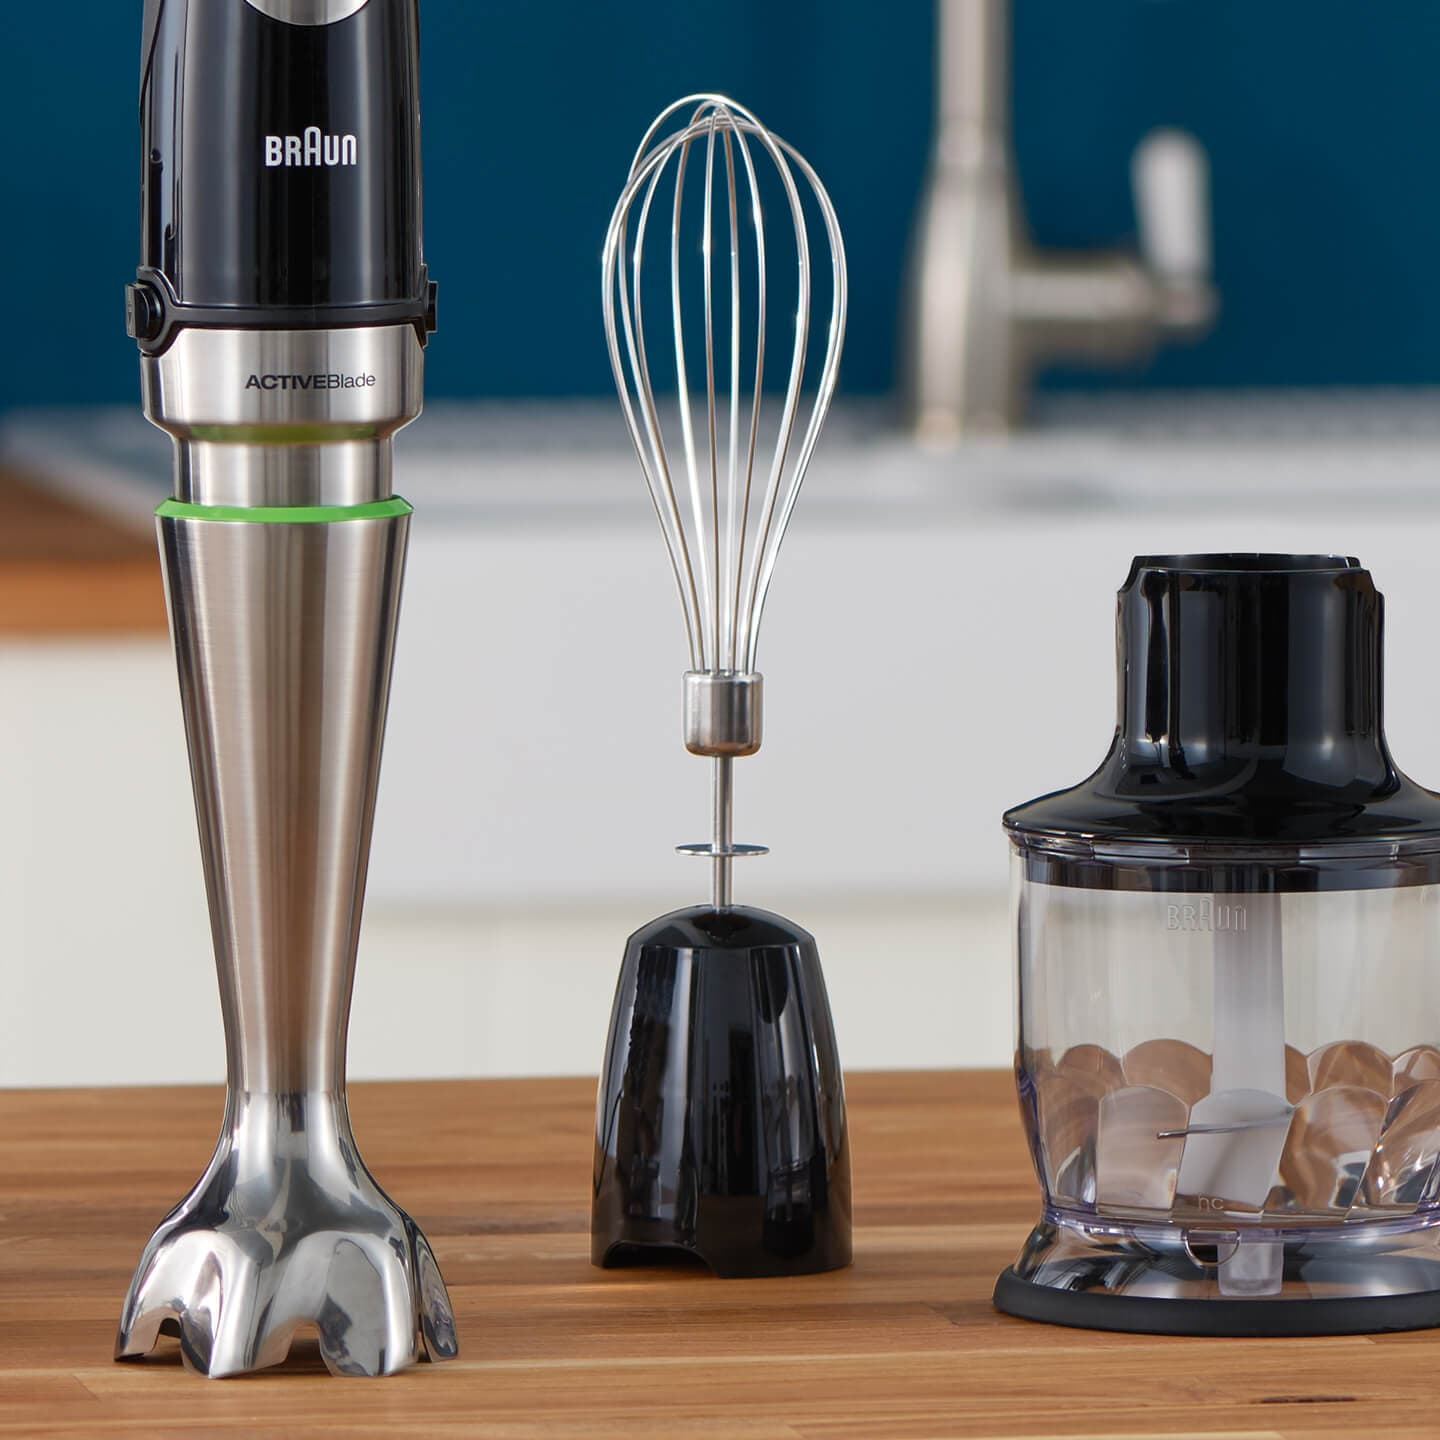 Braun MultiQuick Hand blender Whisk accessory